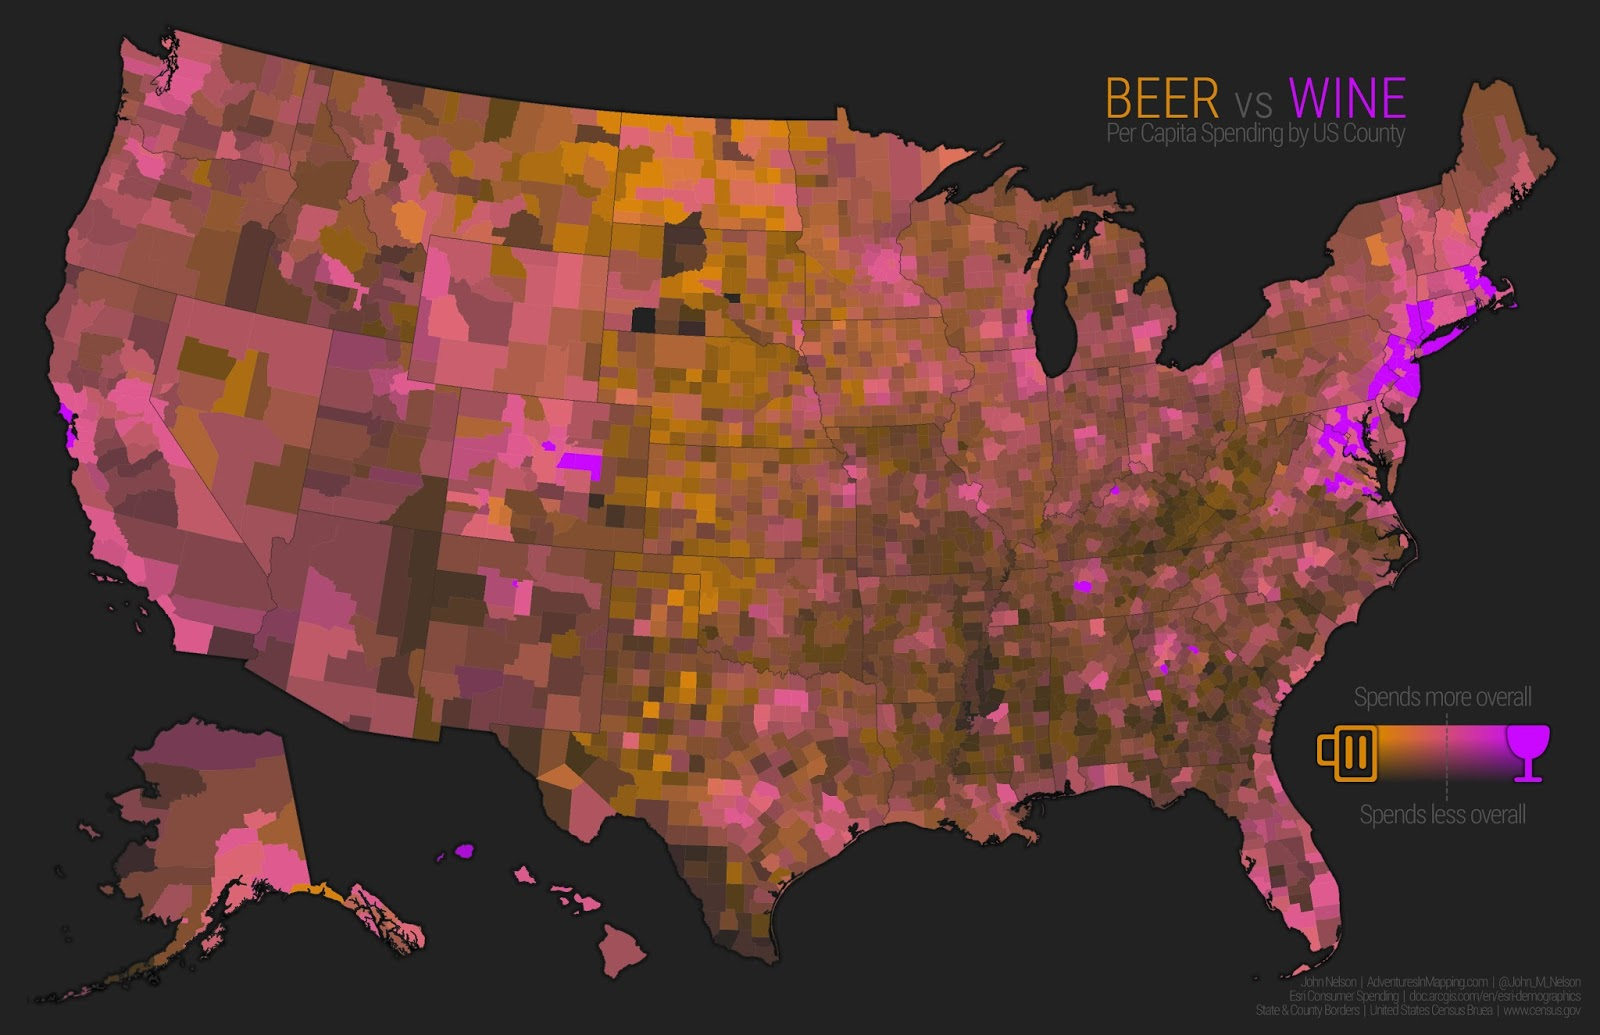 Beer vs Wine per capita spending by U.S. county